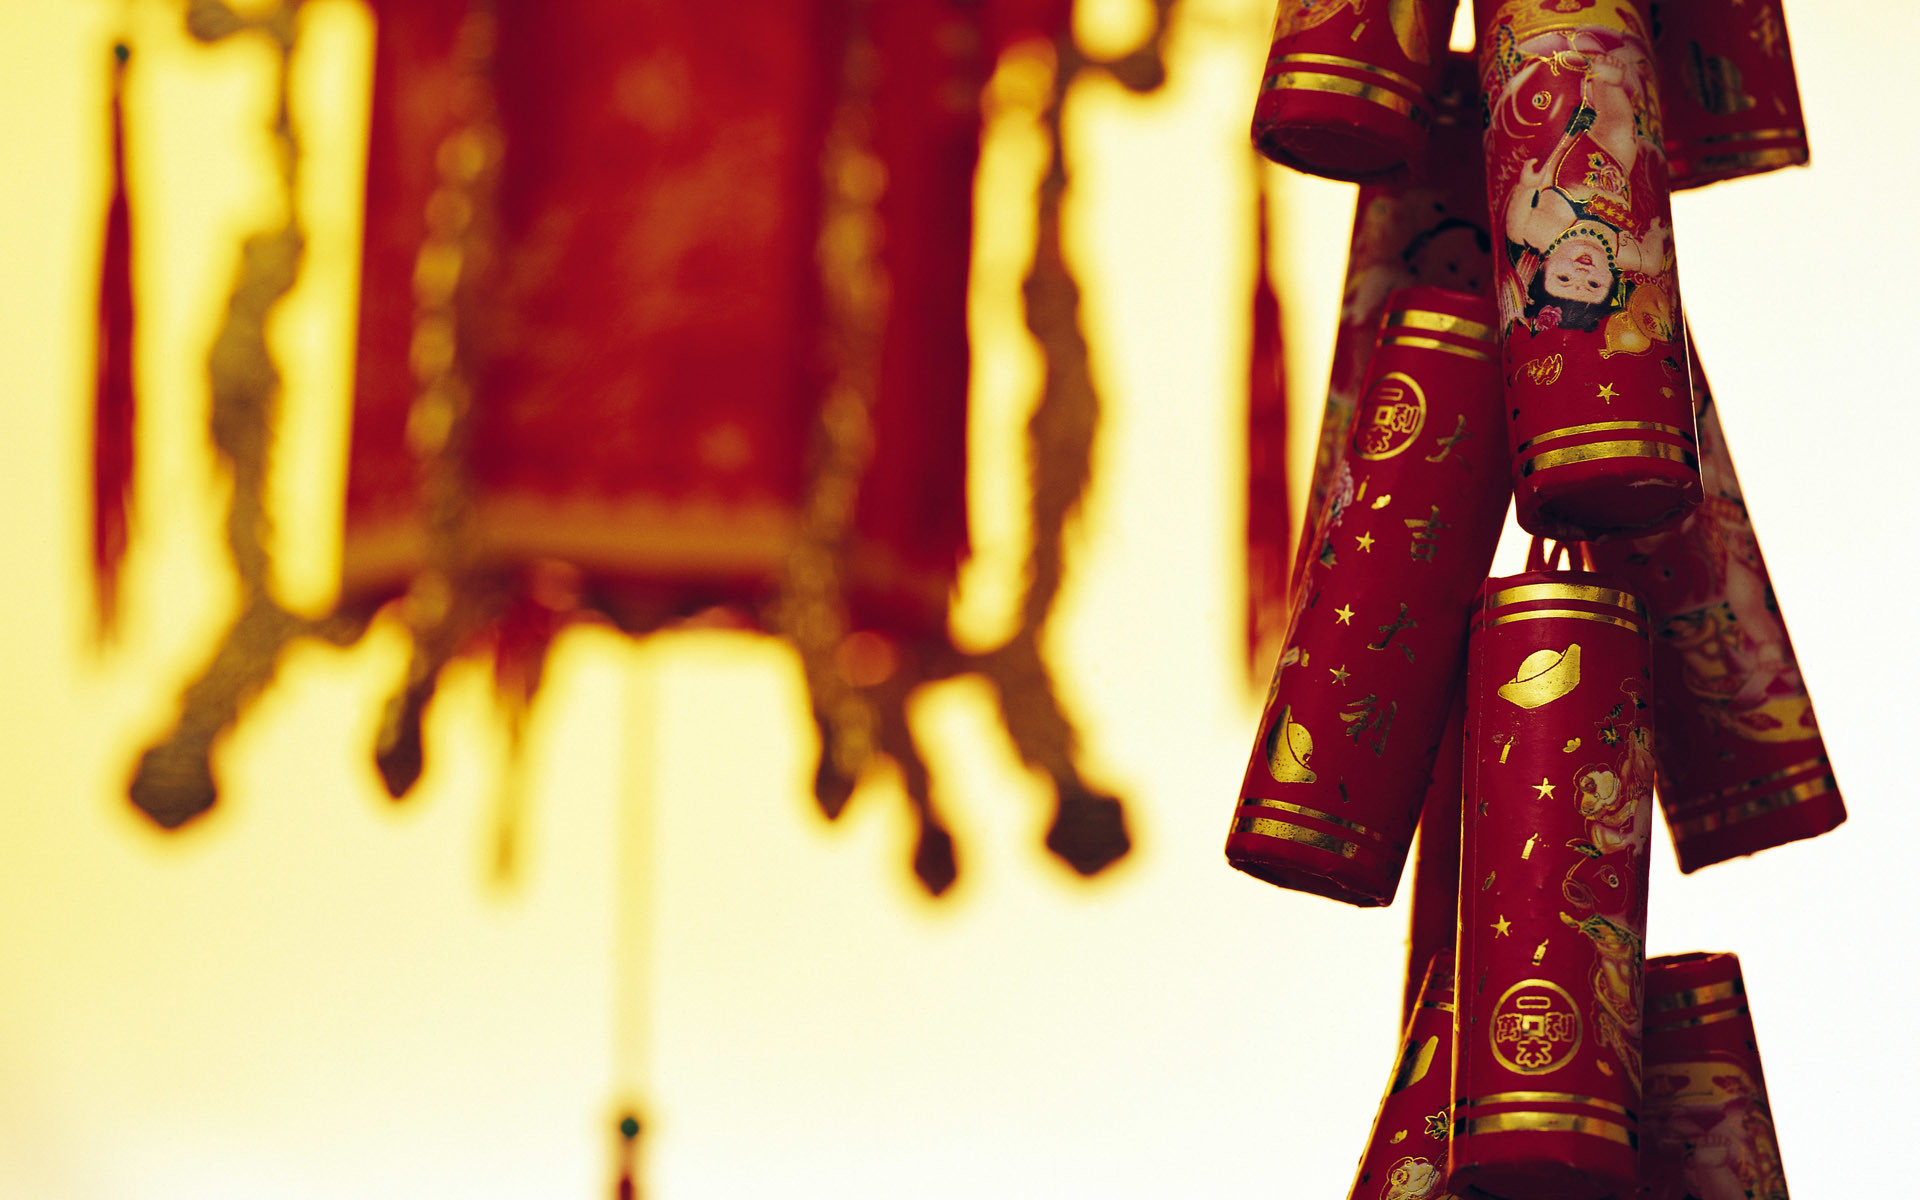 Wallpaper: Chinese New Year 2014 Free Wallpapers